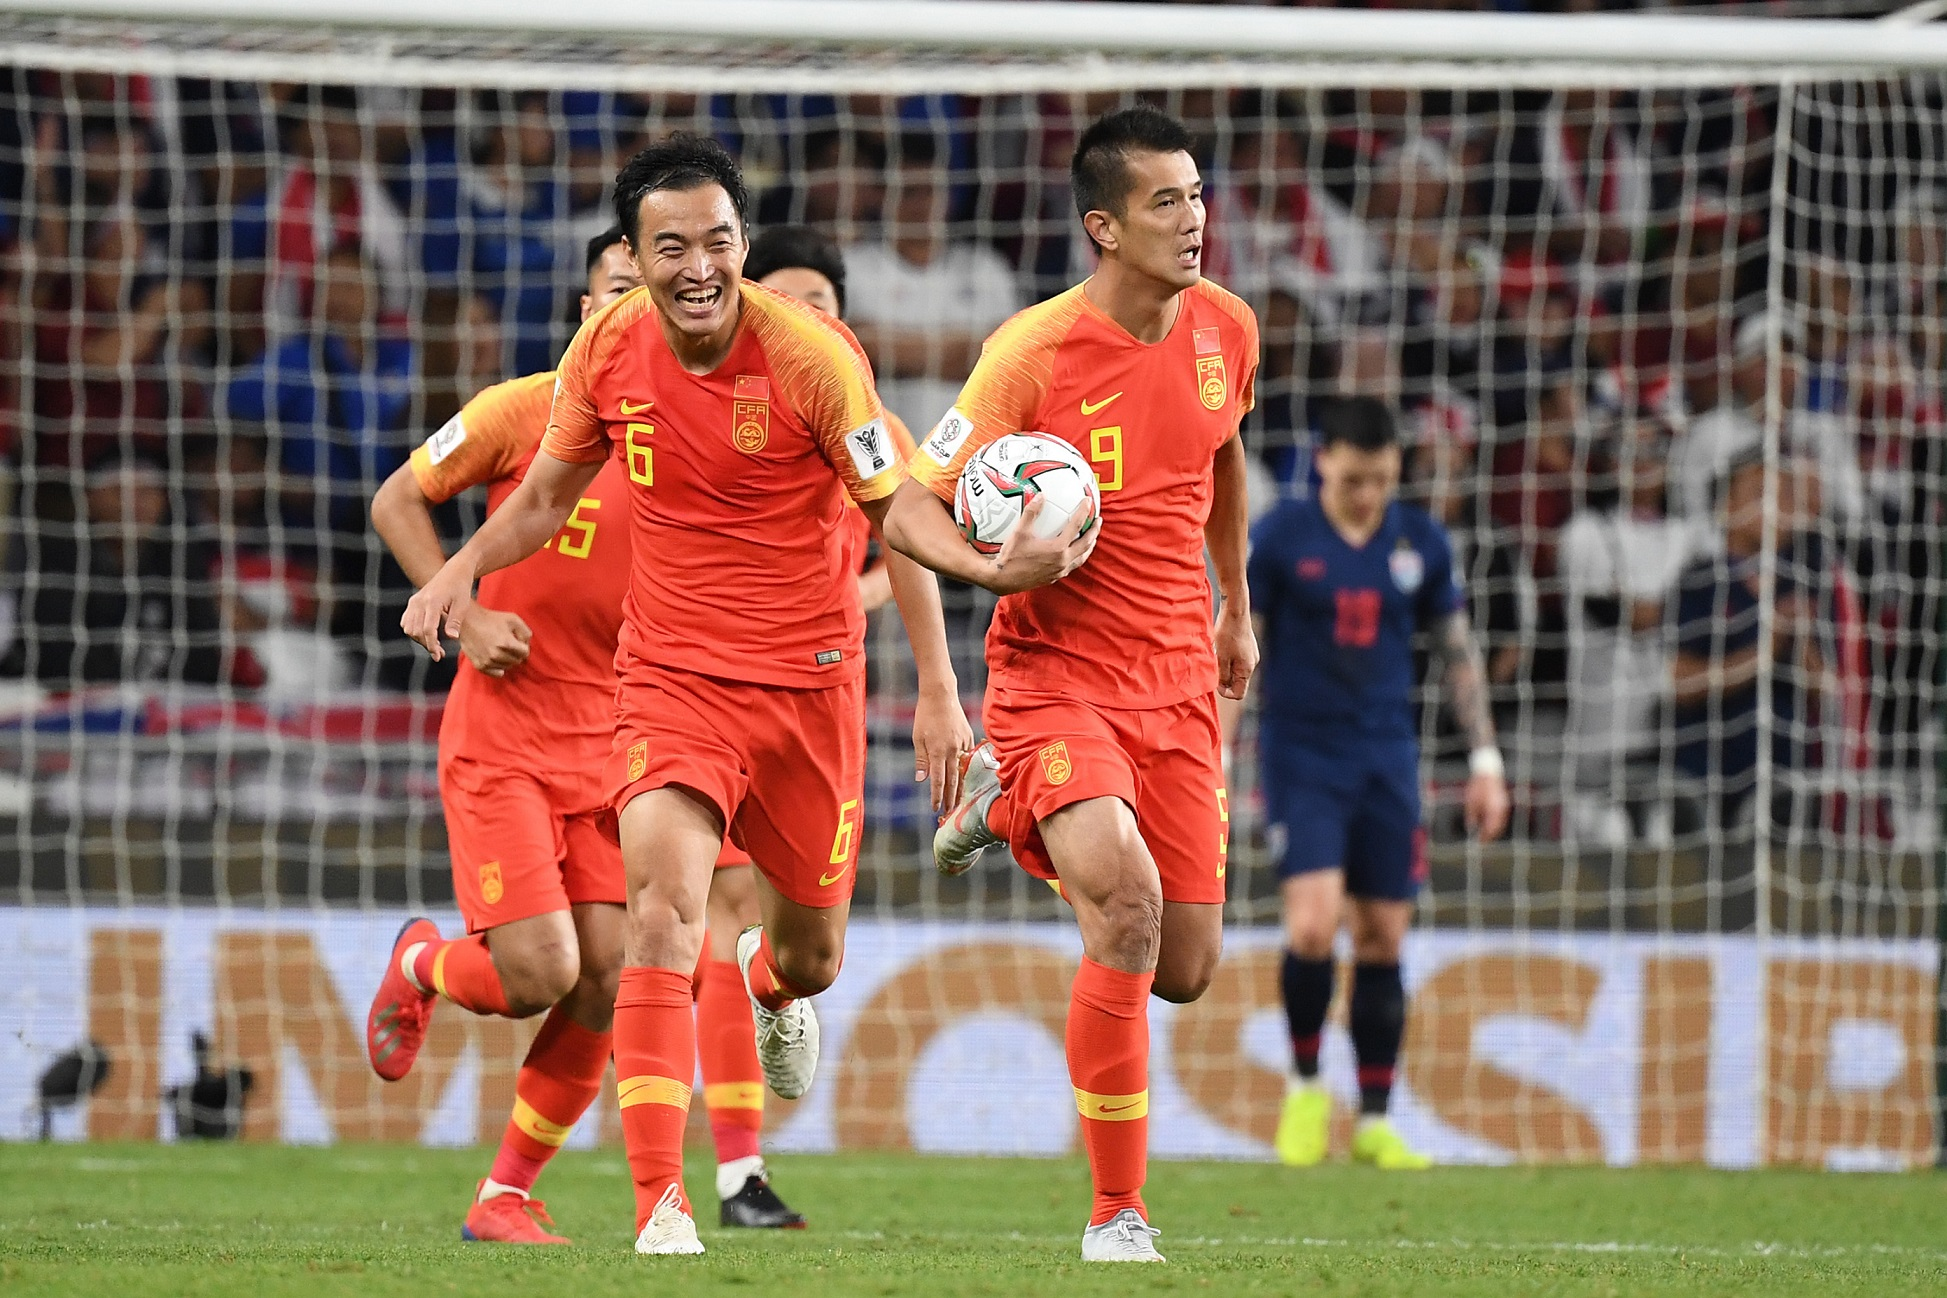 Xiao Zhi after his goal, China will need to play better against Iran (Asian Football Confederation (AFC))